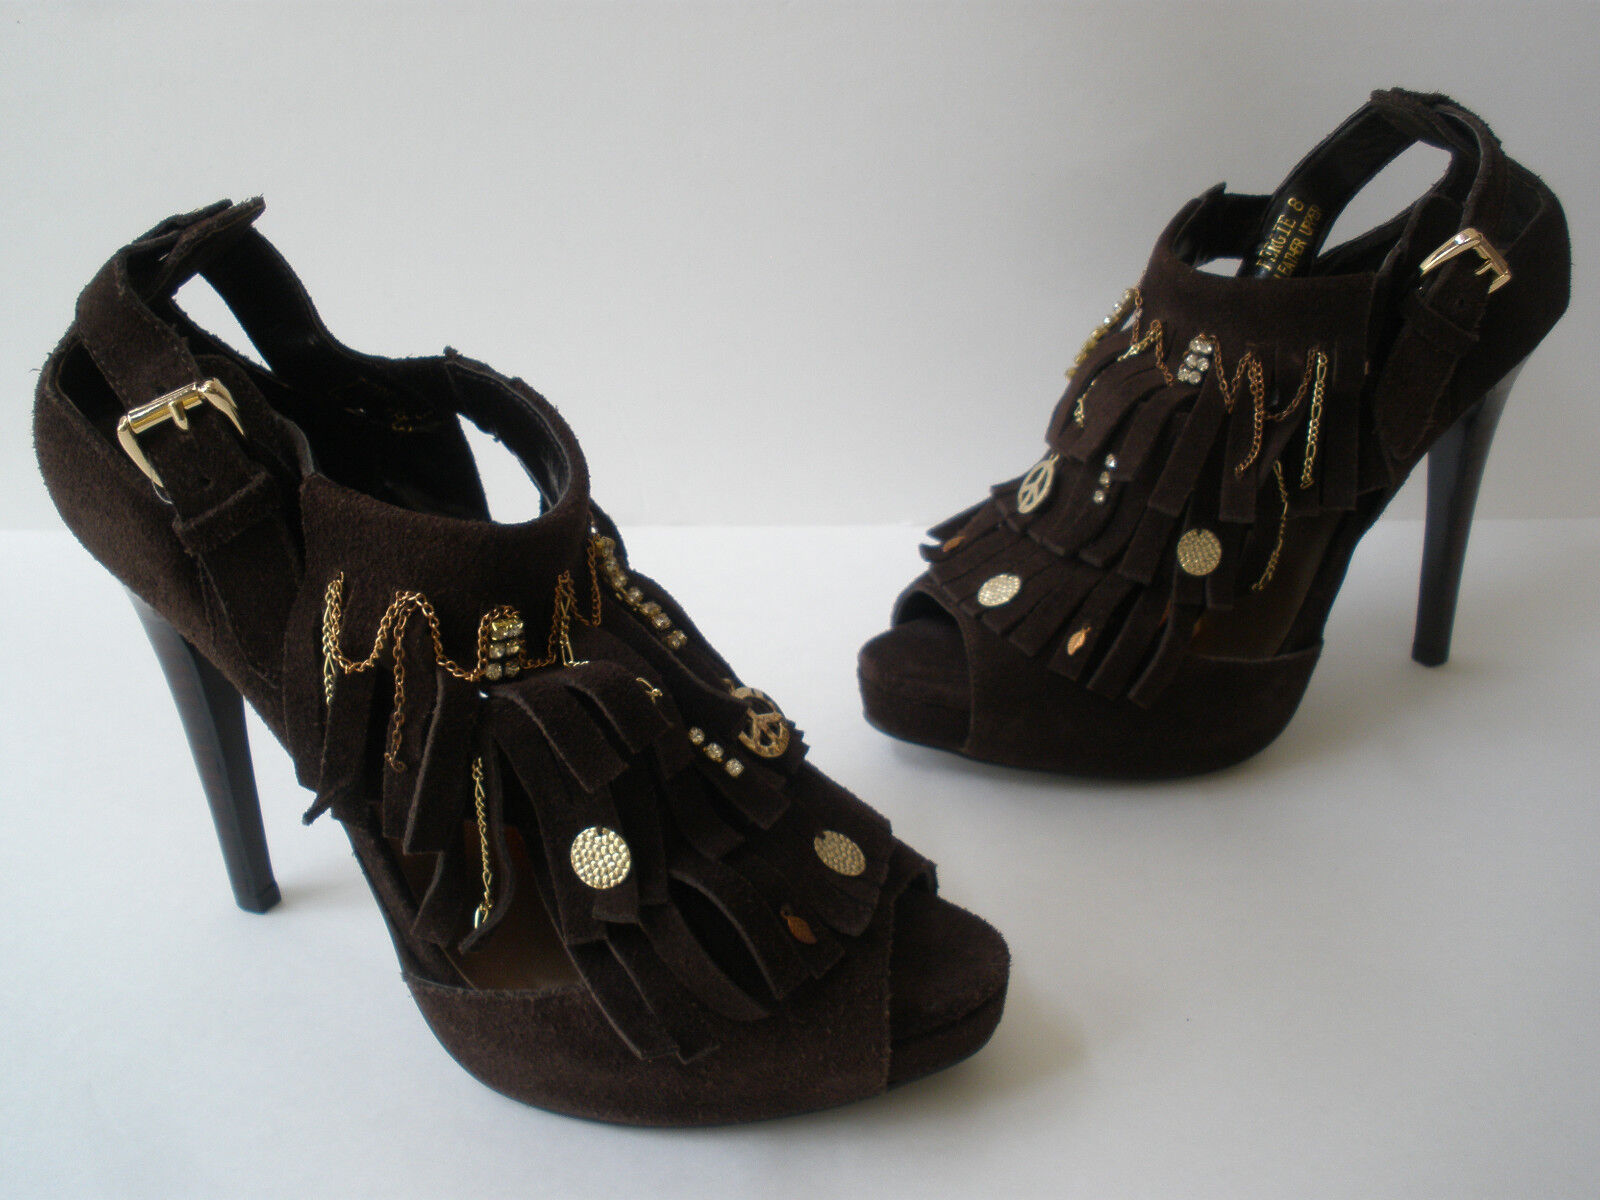 N.YL.A FERGIE BROWN HEELS LEATHER SANDAL CRYSTALS CHAIN HEELS BROWN SIZE US 8 SUPER HOT SEXY 68cf4a